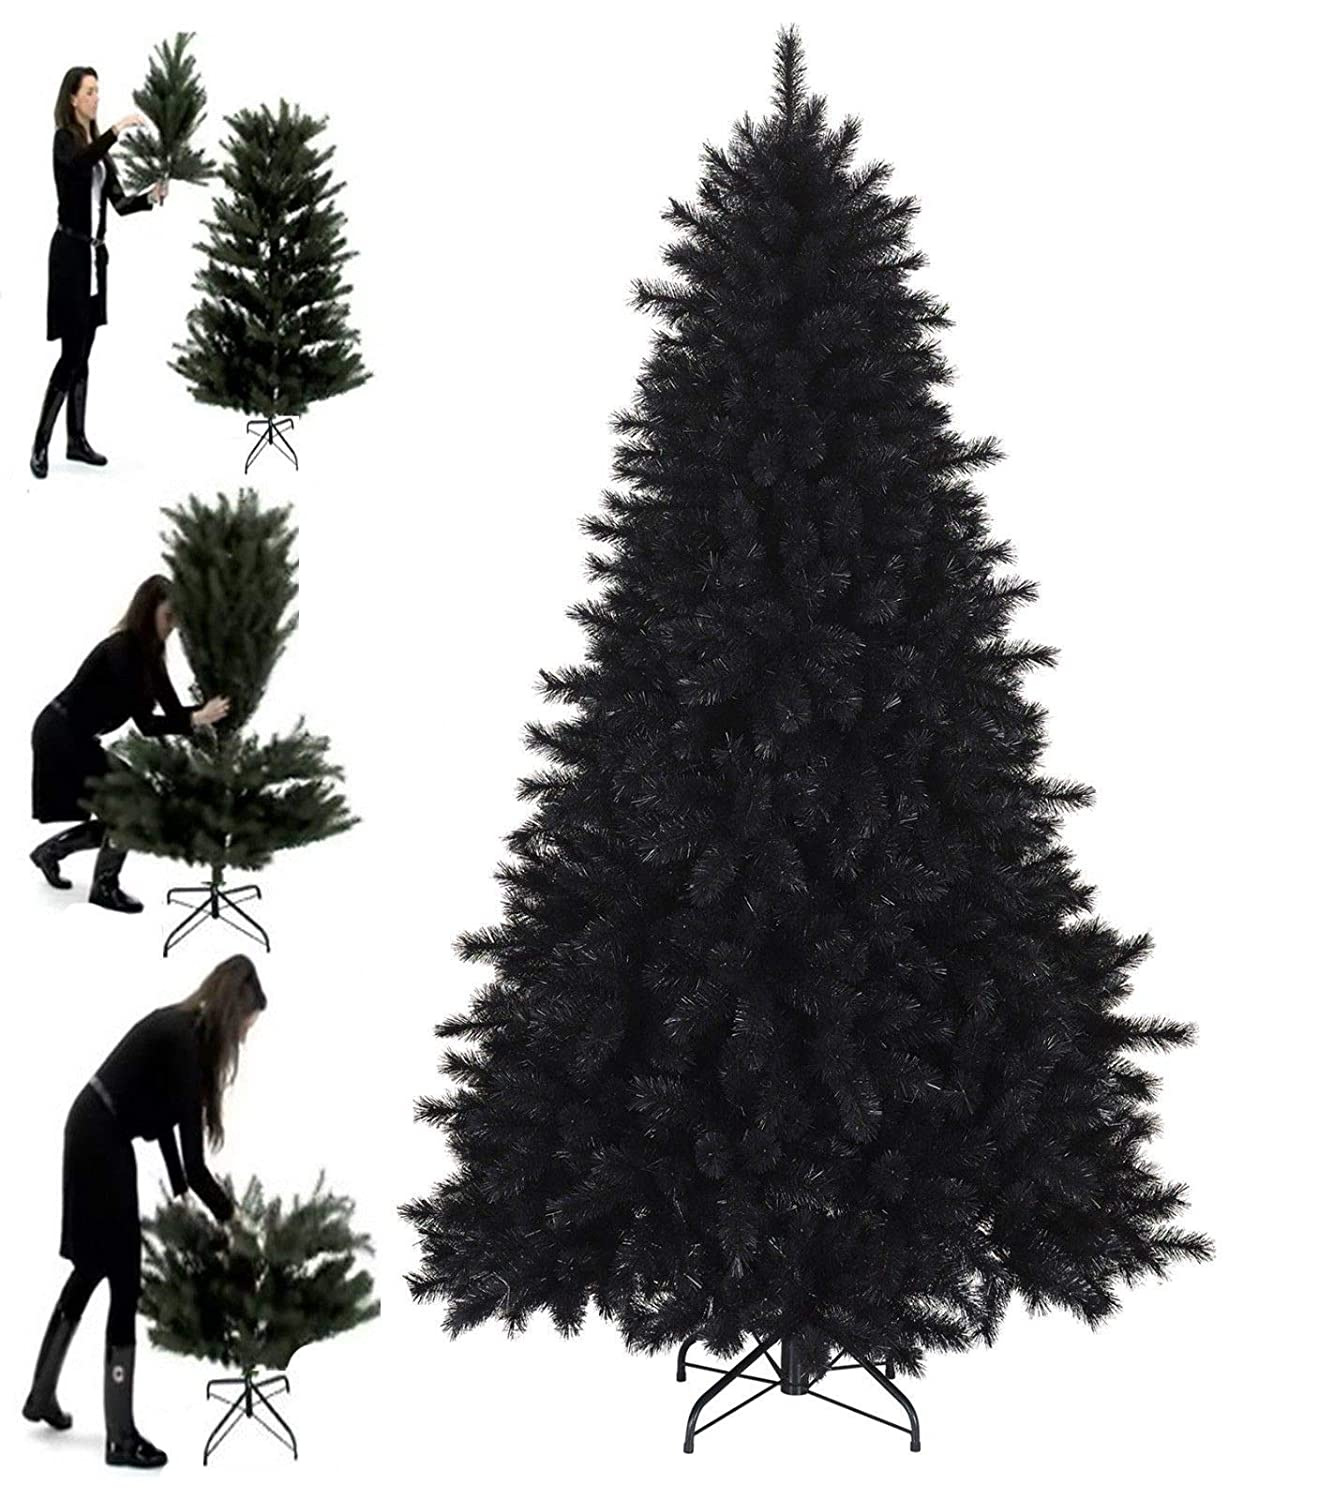 Green, 5 Feet SAFRI Green /& Black 5 6 7 Feet Pine Look Artificial Christmas Tree 440 700 1000 Thick Tips Xmas Home Office Indoor Decoration